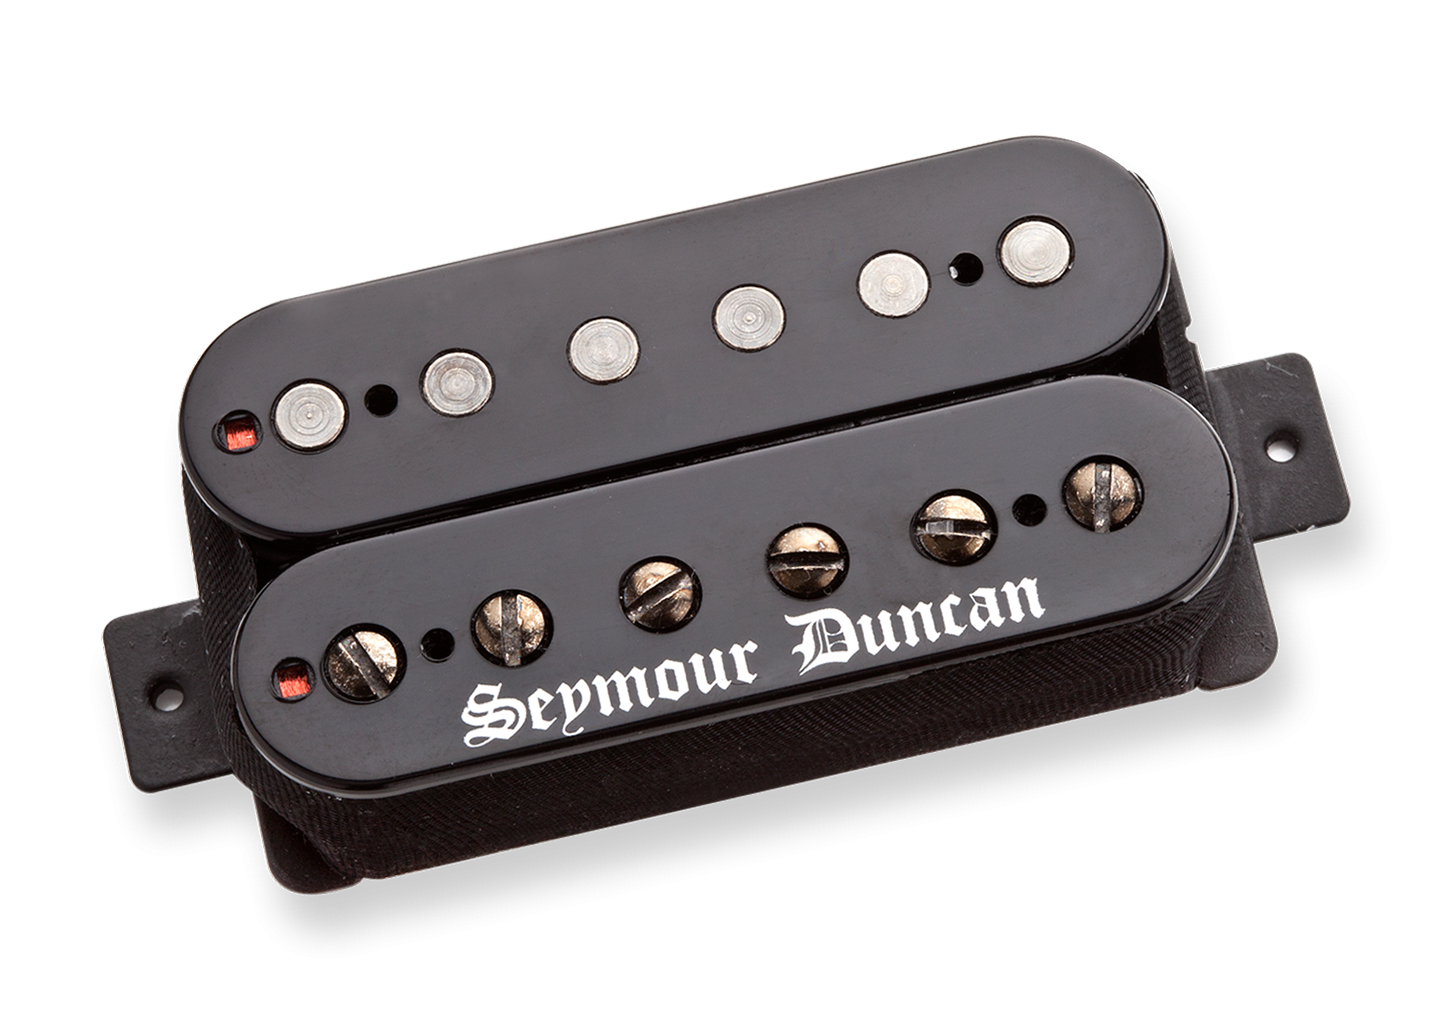 Seymour Duncan Black Winter Humbucker - Bridge